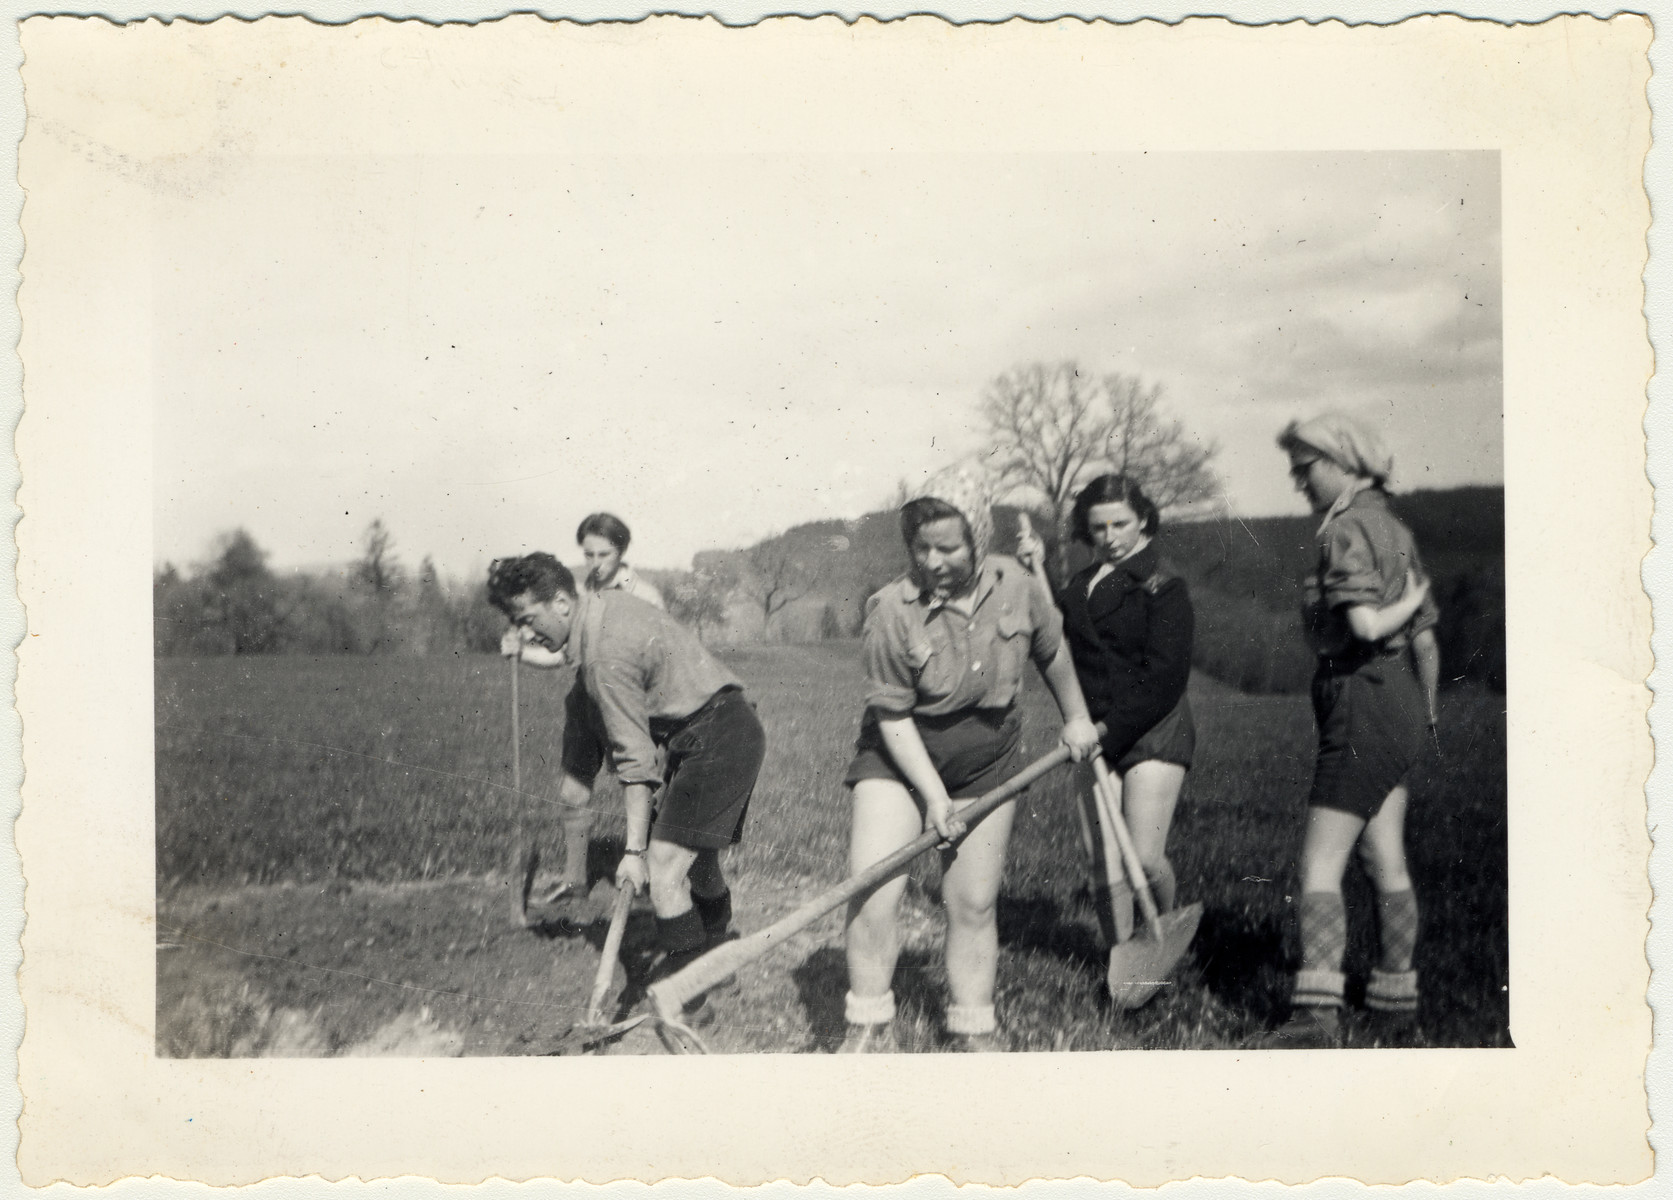 Joseph Protter, Regina Gelbart, Rudi, Minni, and Sitta, members of a Zionist youth movement, work in the fields.